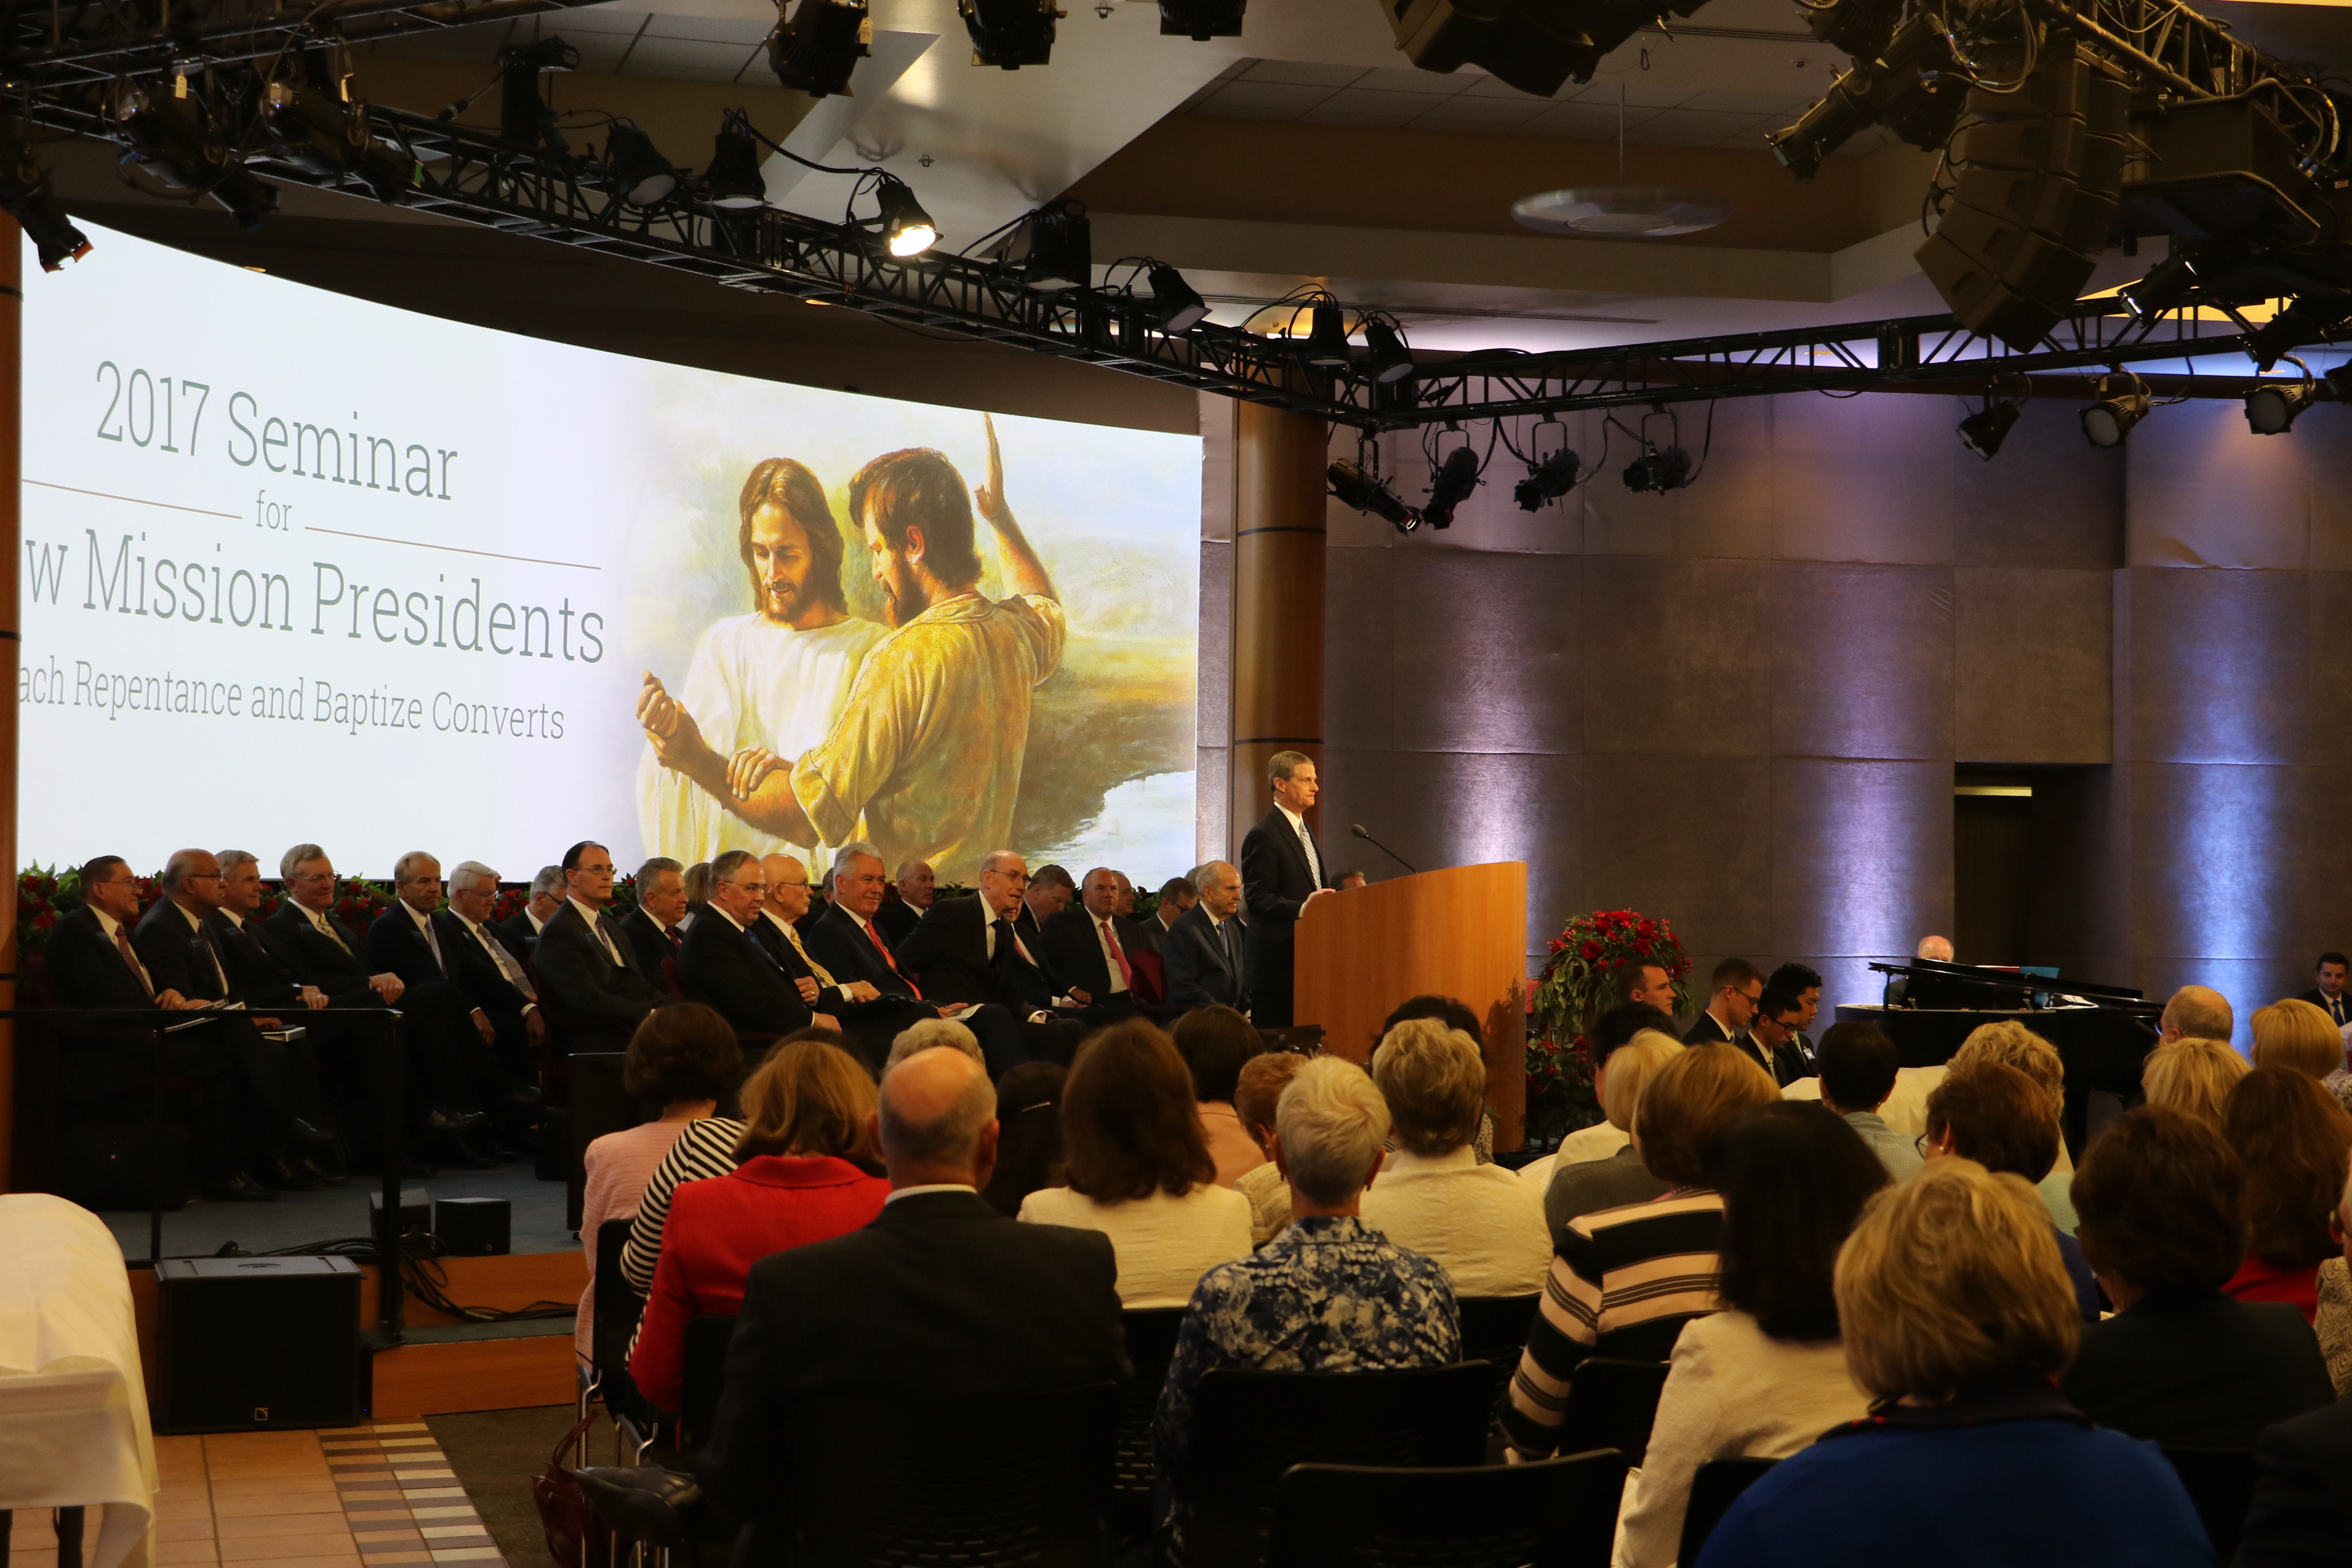 One hundred twenty seven mission presidents and their wives gather in the Provo Missionary Training Center to hear counsel and instruction from Church leaders during the 2017 Seminar for New Mission Presidents on Sunday, June 25.